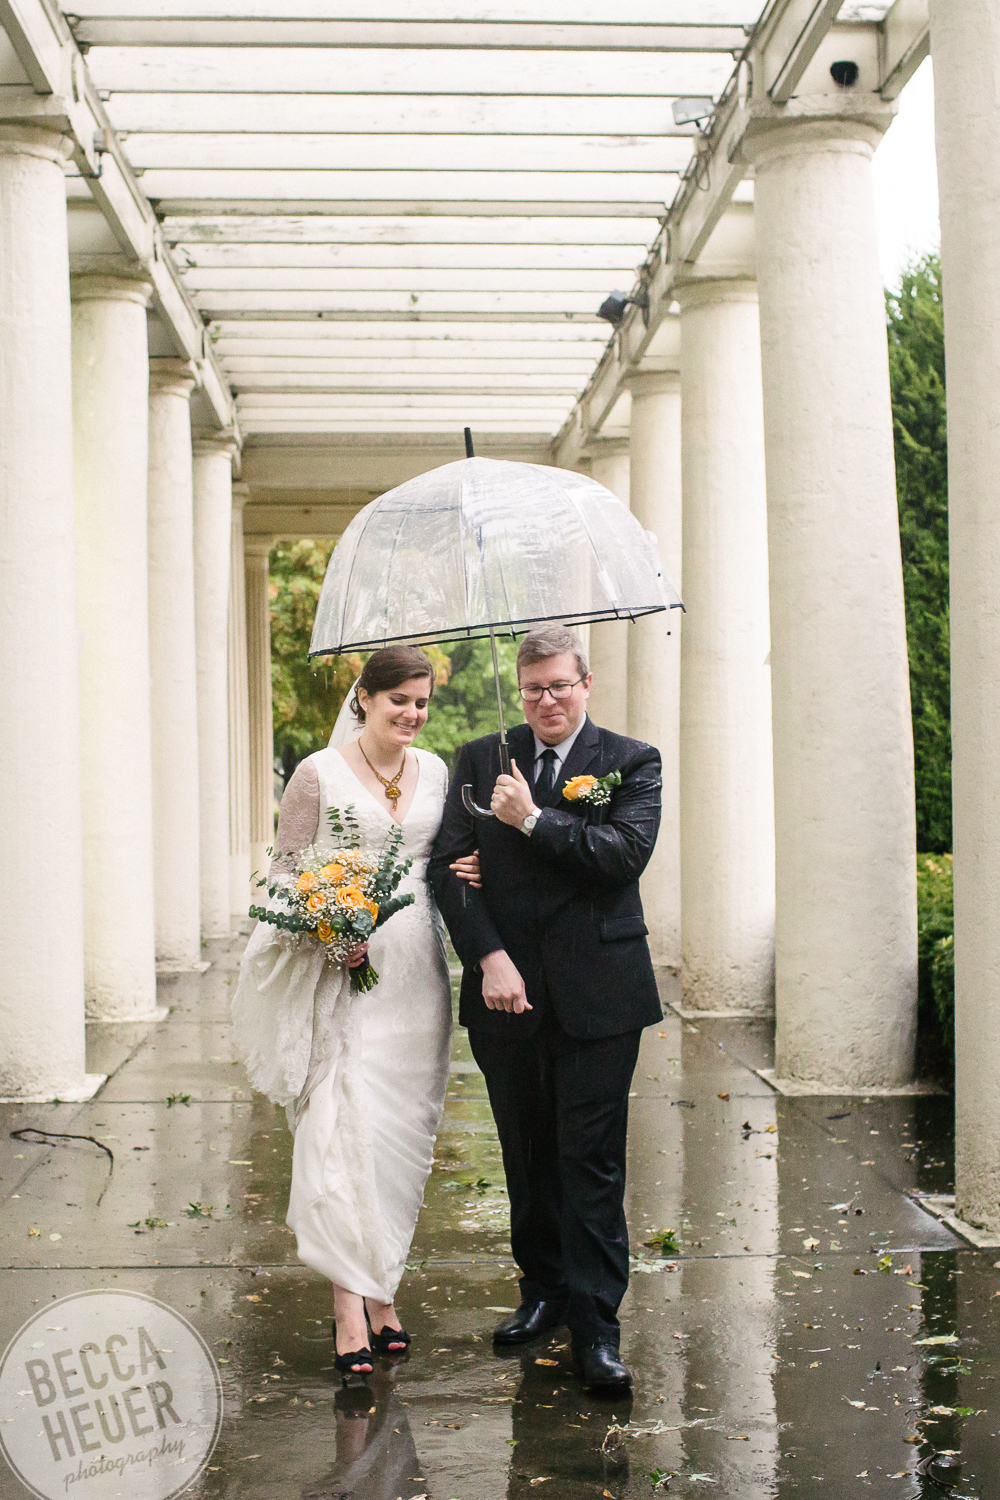 Agne and Paul_Wedding_10-01-17_Blog-088.jpg